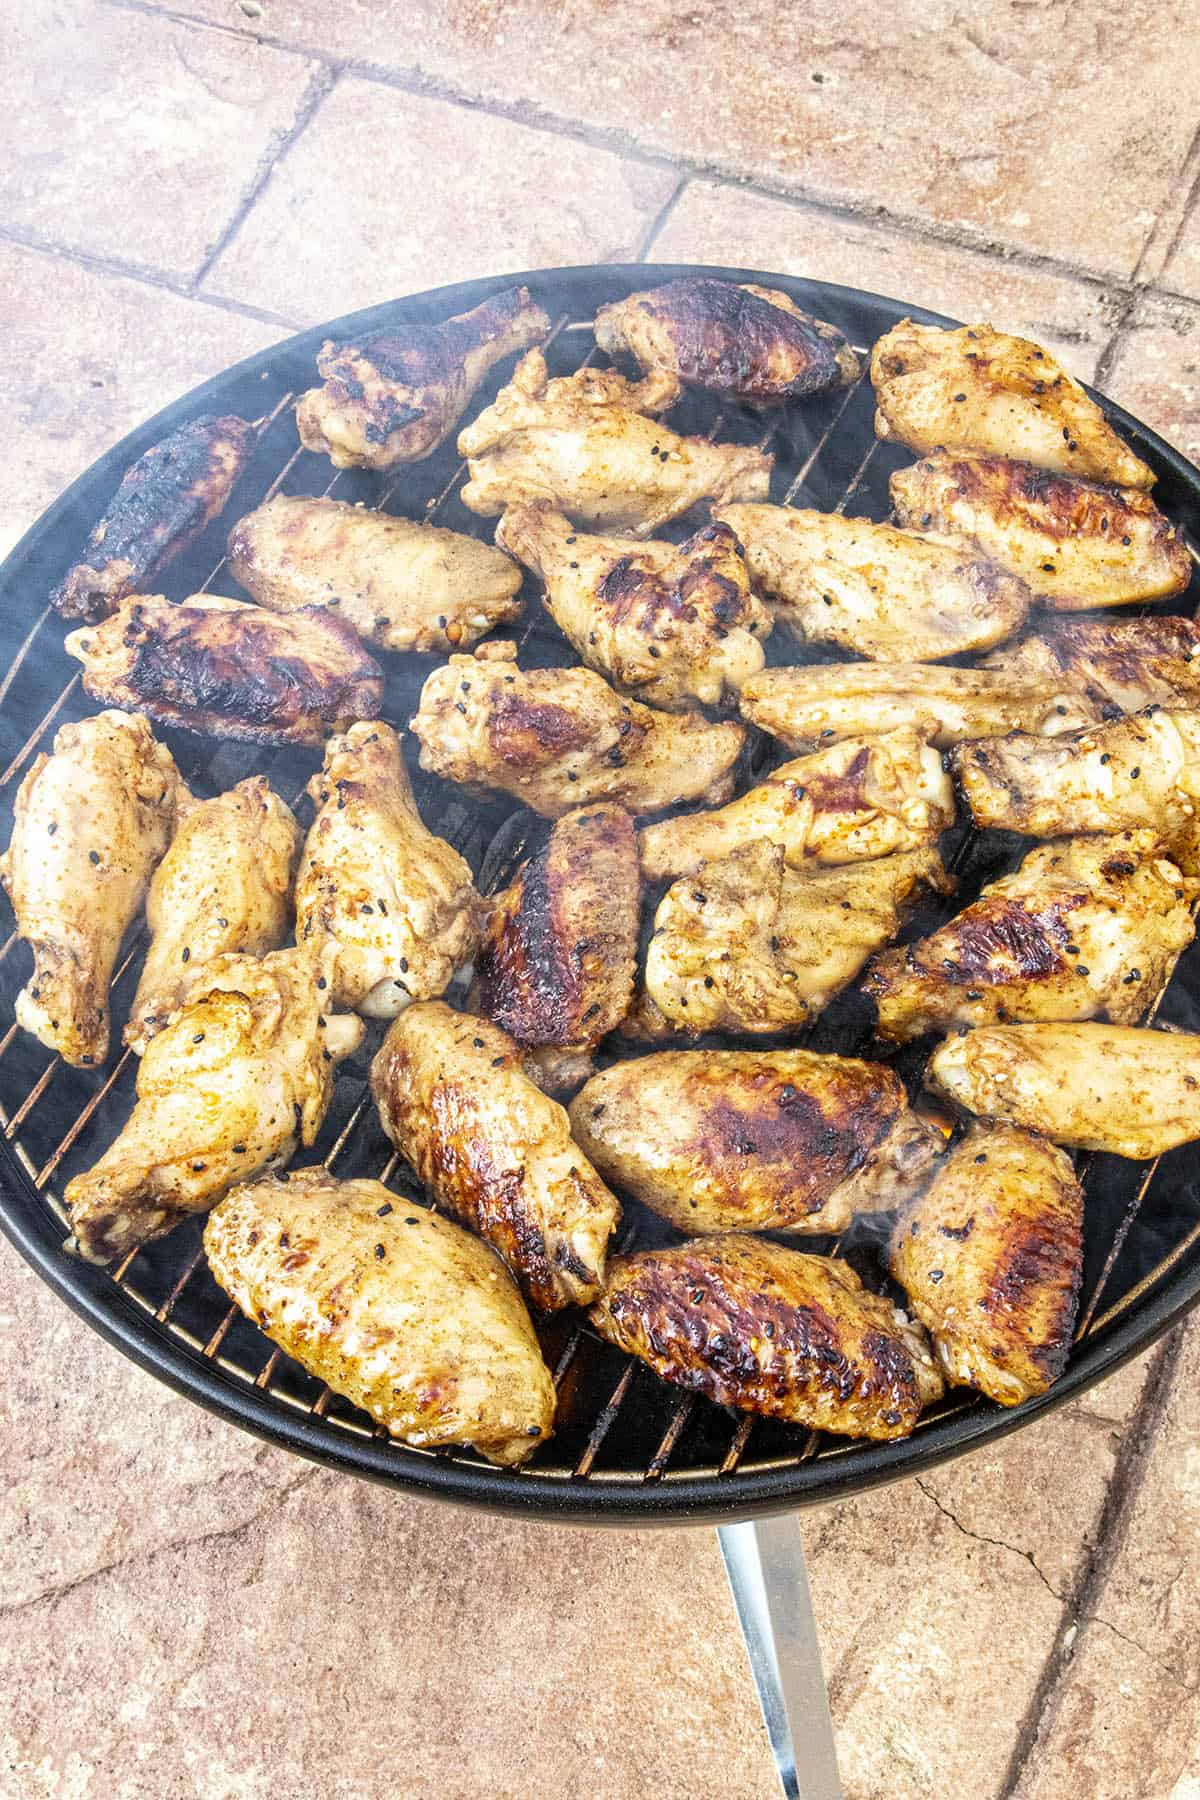 Grilled chicken on the grill, nice and smoky